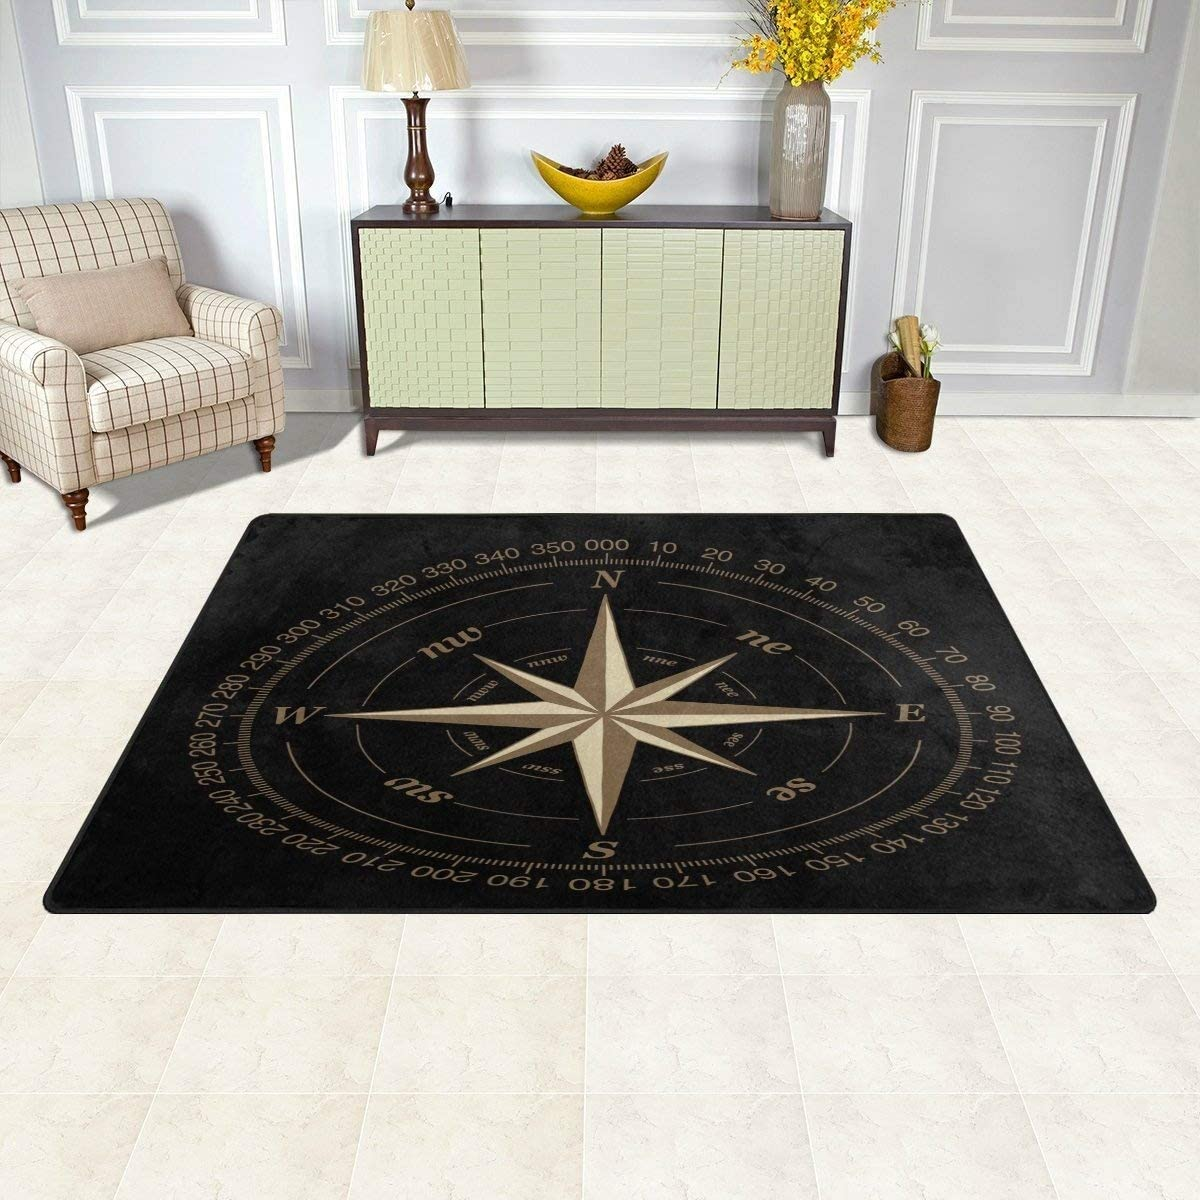 Wozo Compass Rose Black Area Rug Rugs Non Slip Floor Mat Doormats Living Room Bedroom 31